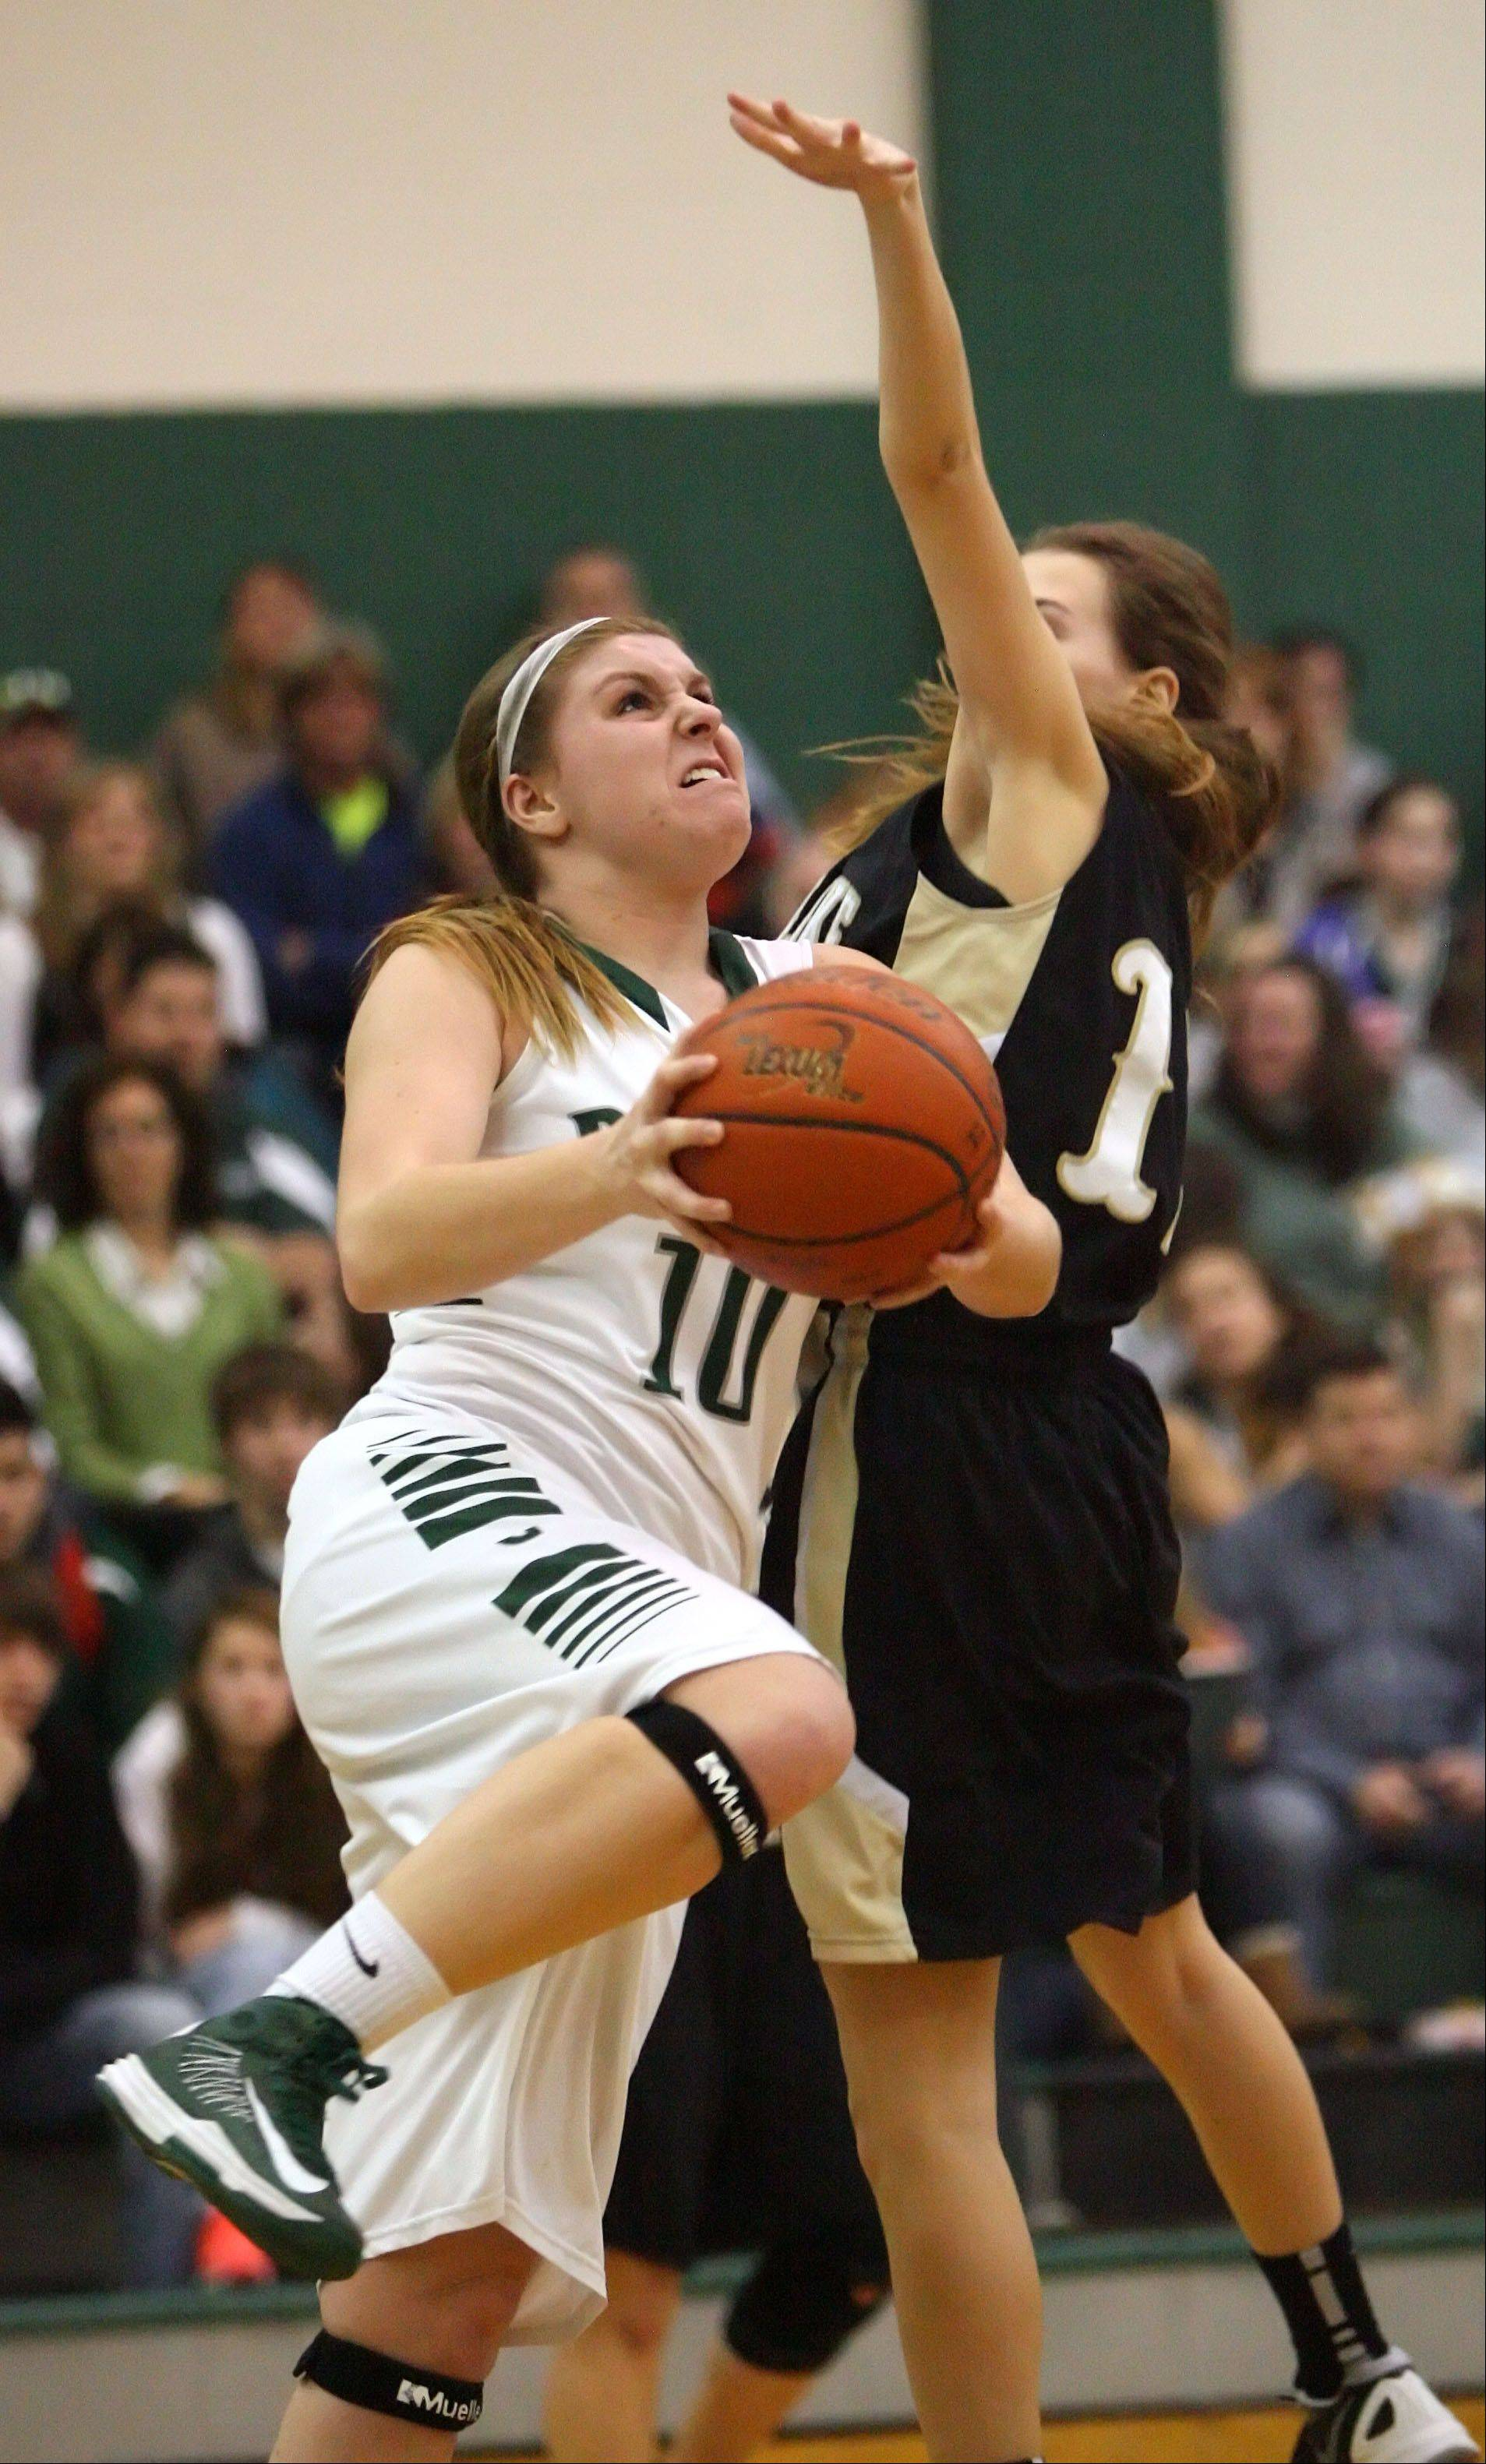 Grayslake Central's Maddy Miller, left, drives on Grayslake North's Emily Dugan.